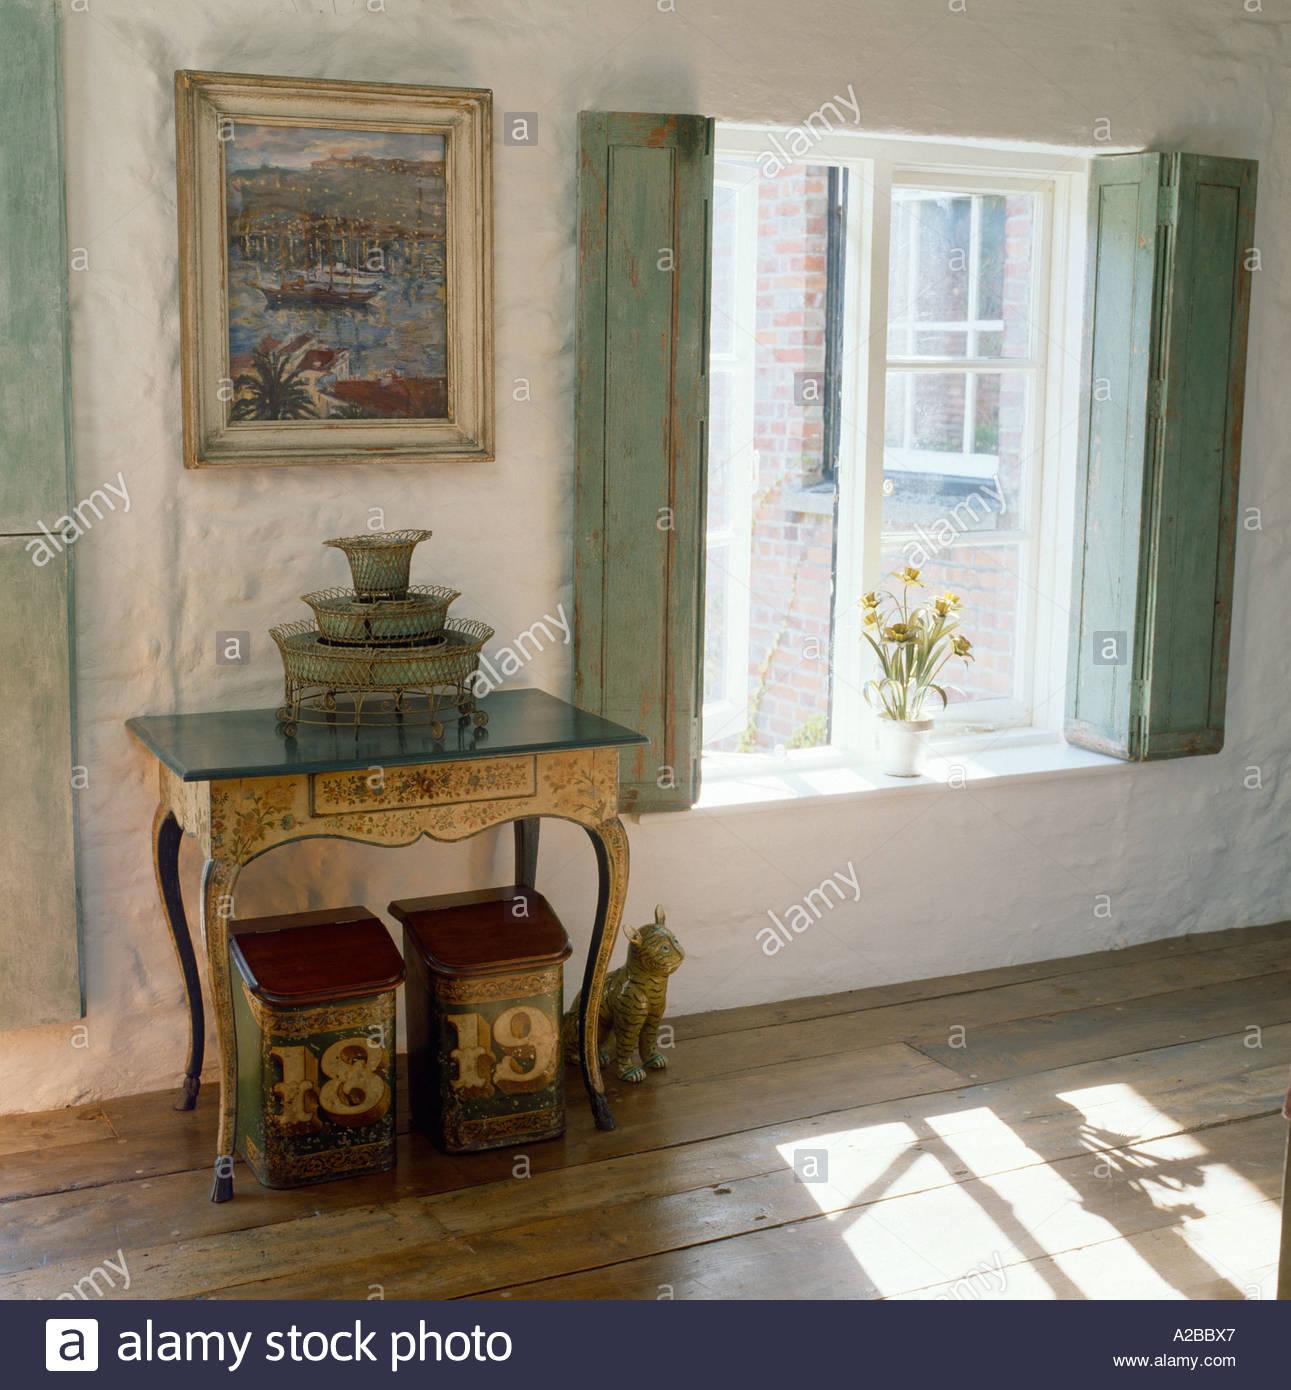 Bedroom With French Style Interior Windows With Shutters Stock Photo Royalty Free Image